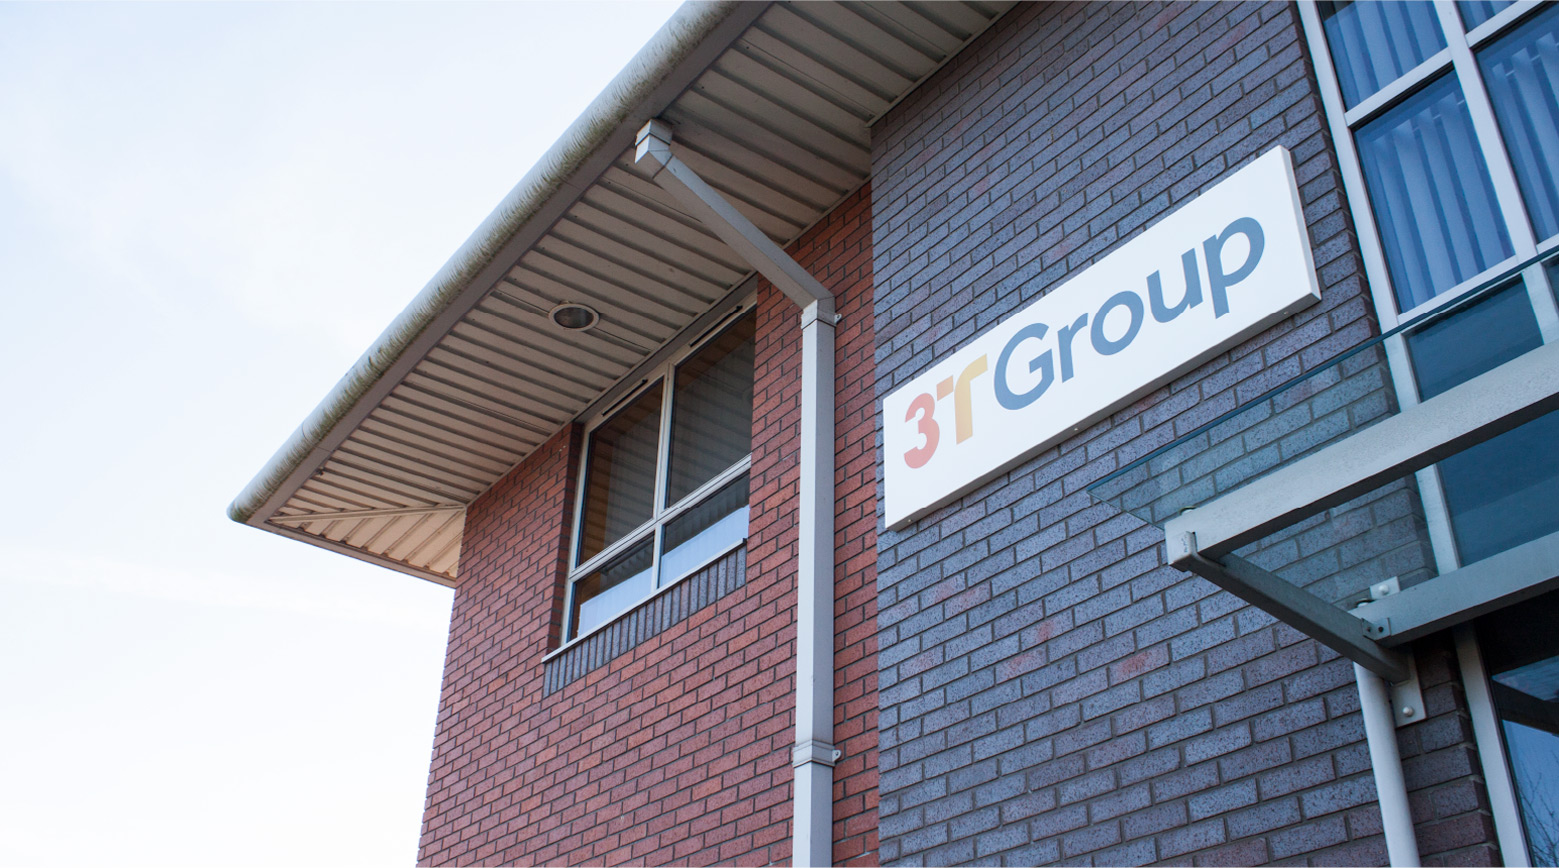 3T Group Logo on side of building